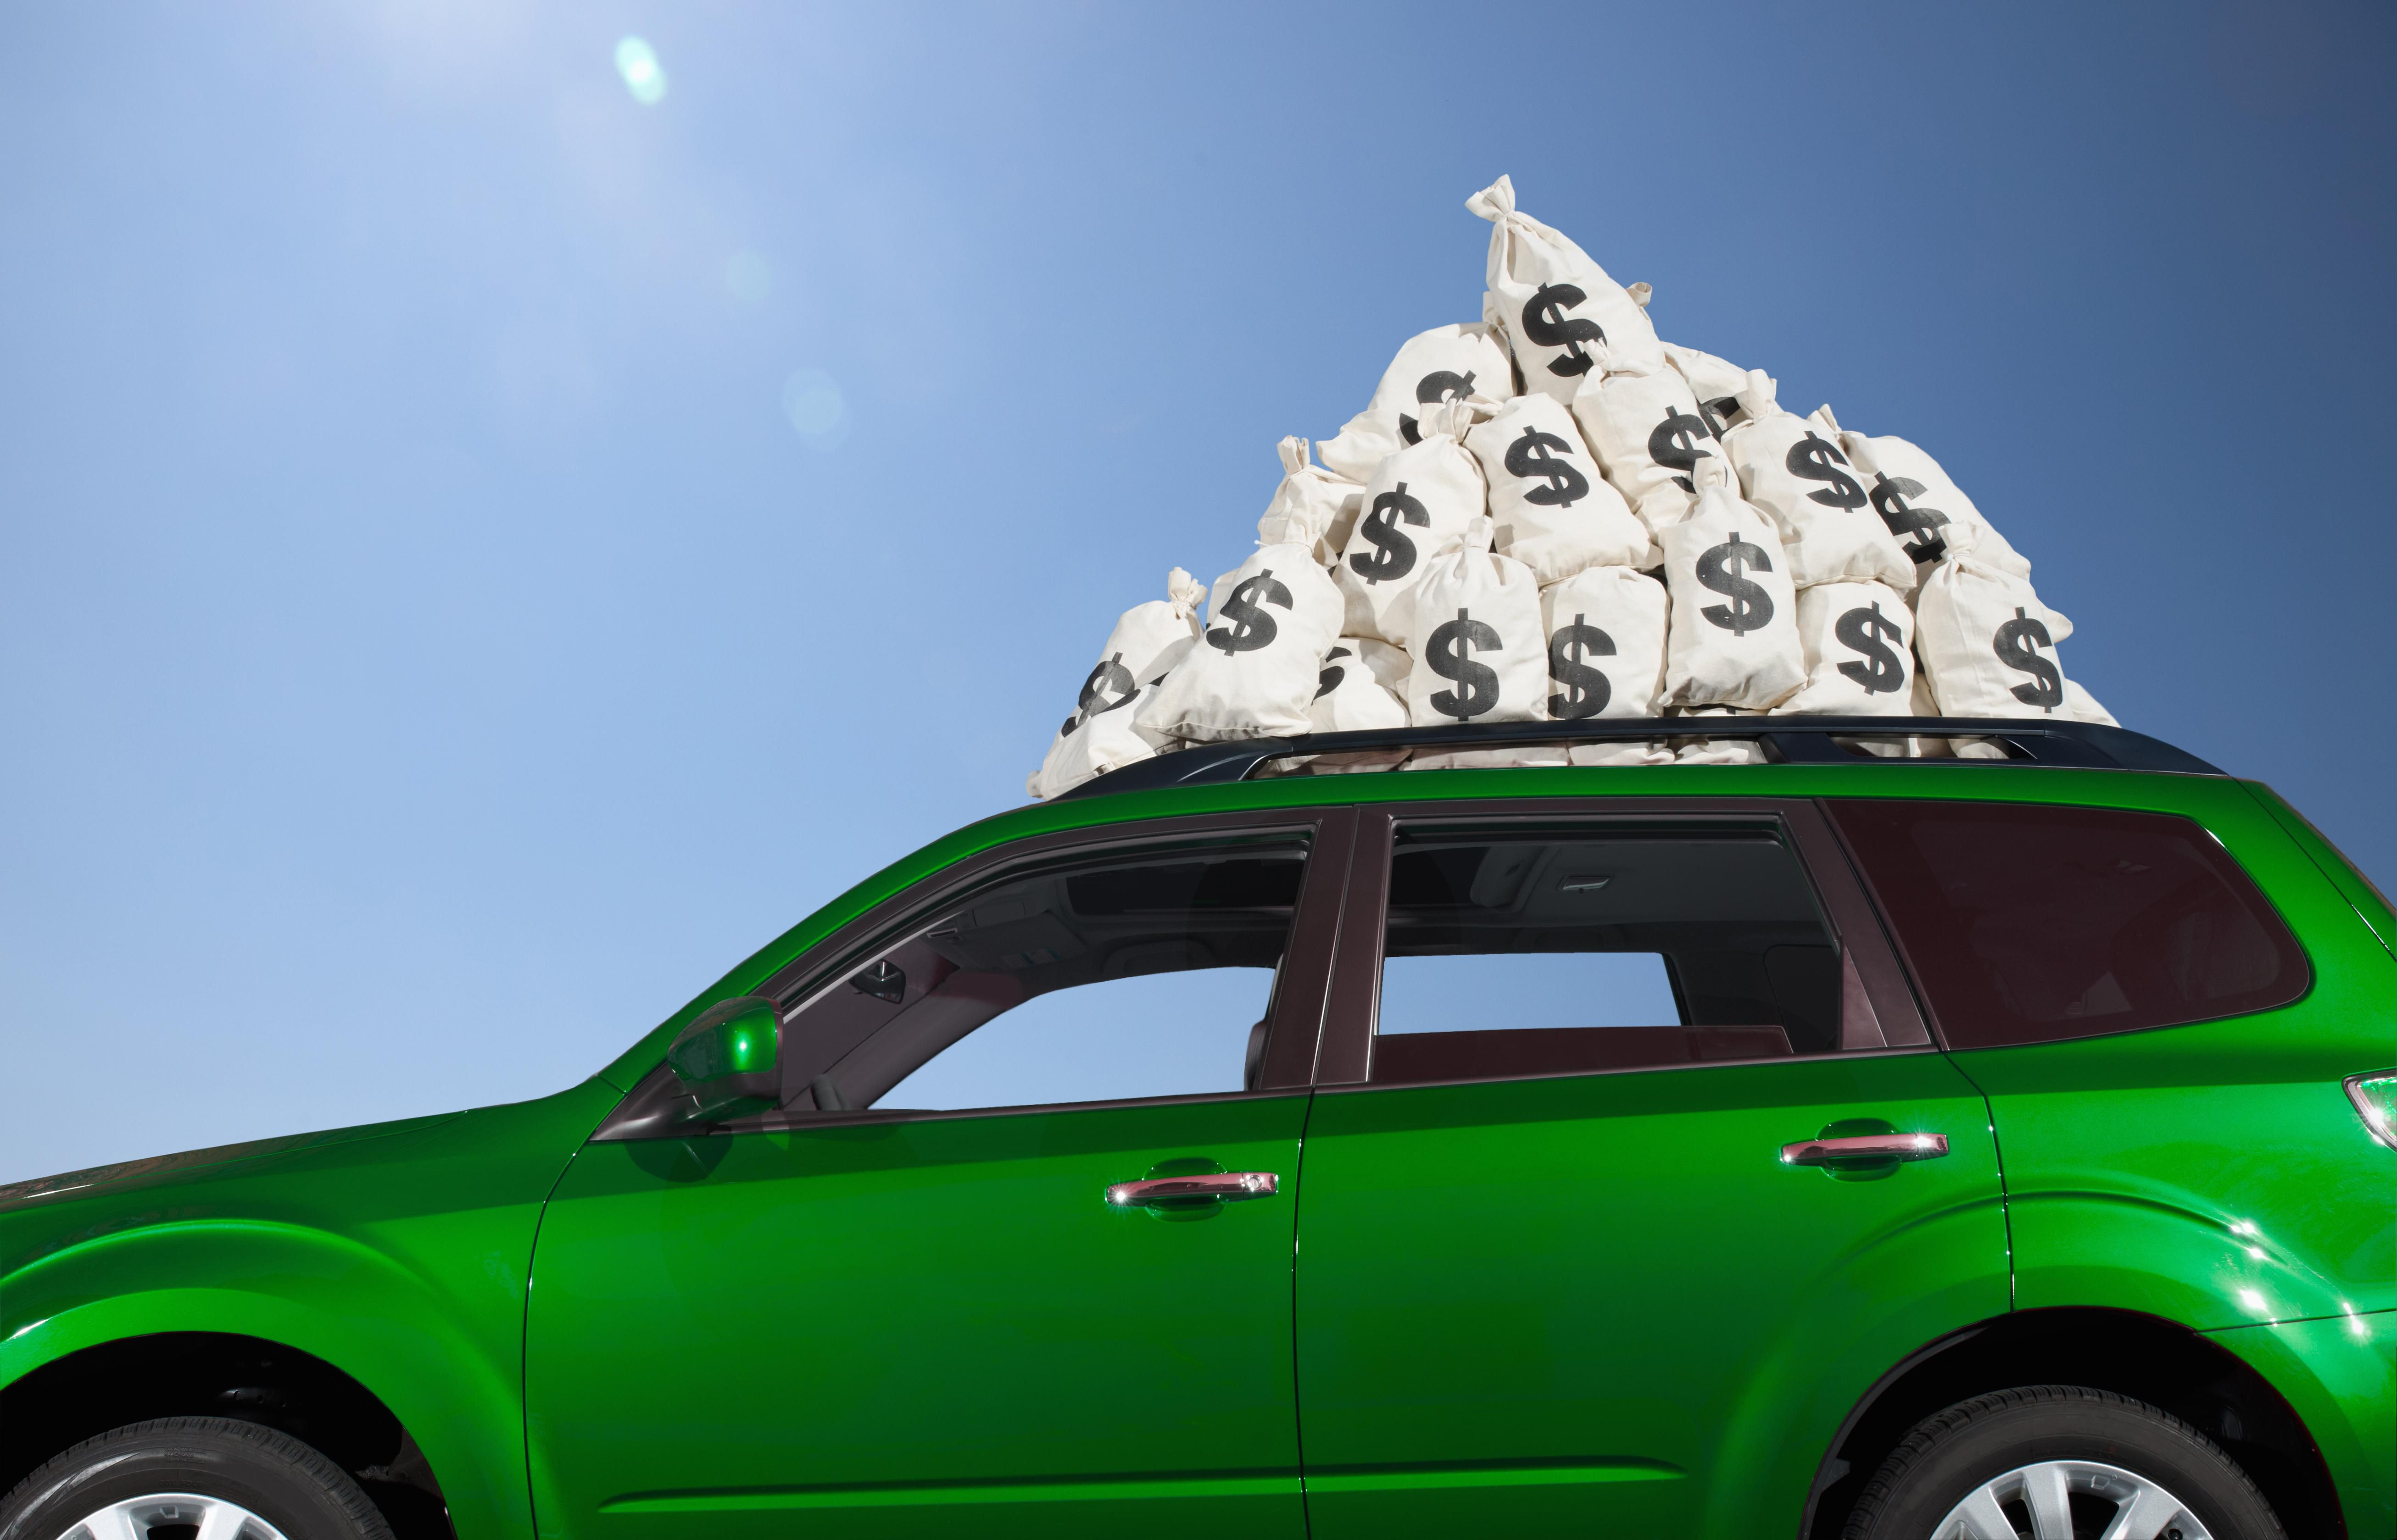 Money bags piled on car roof